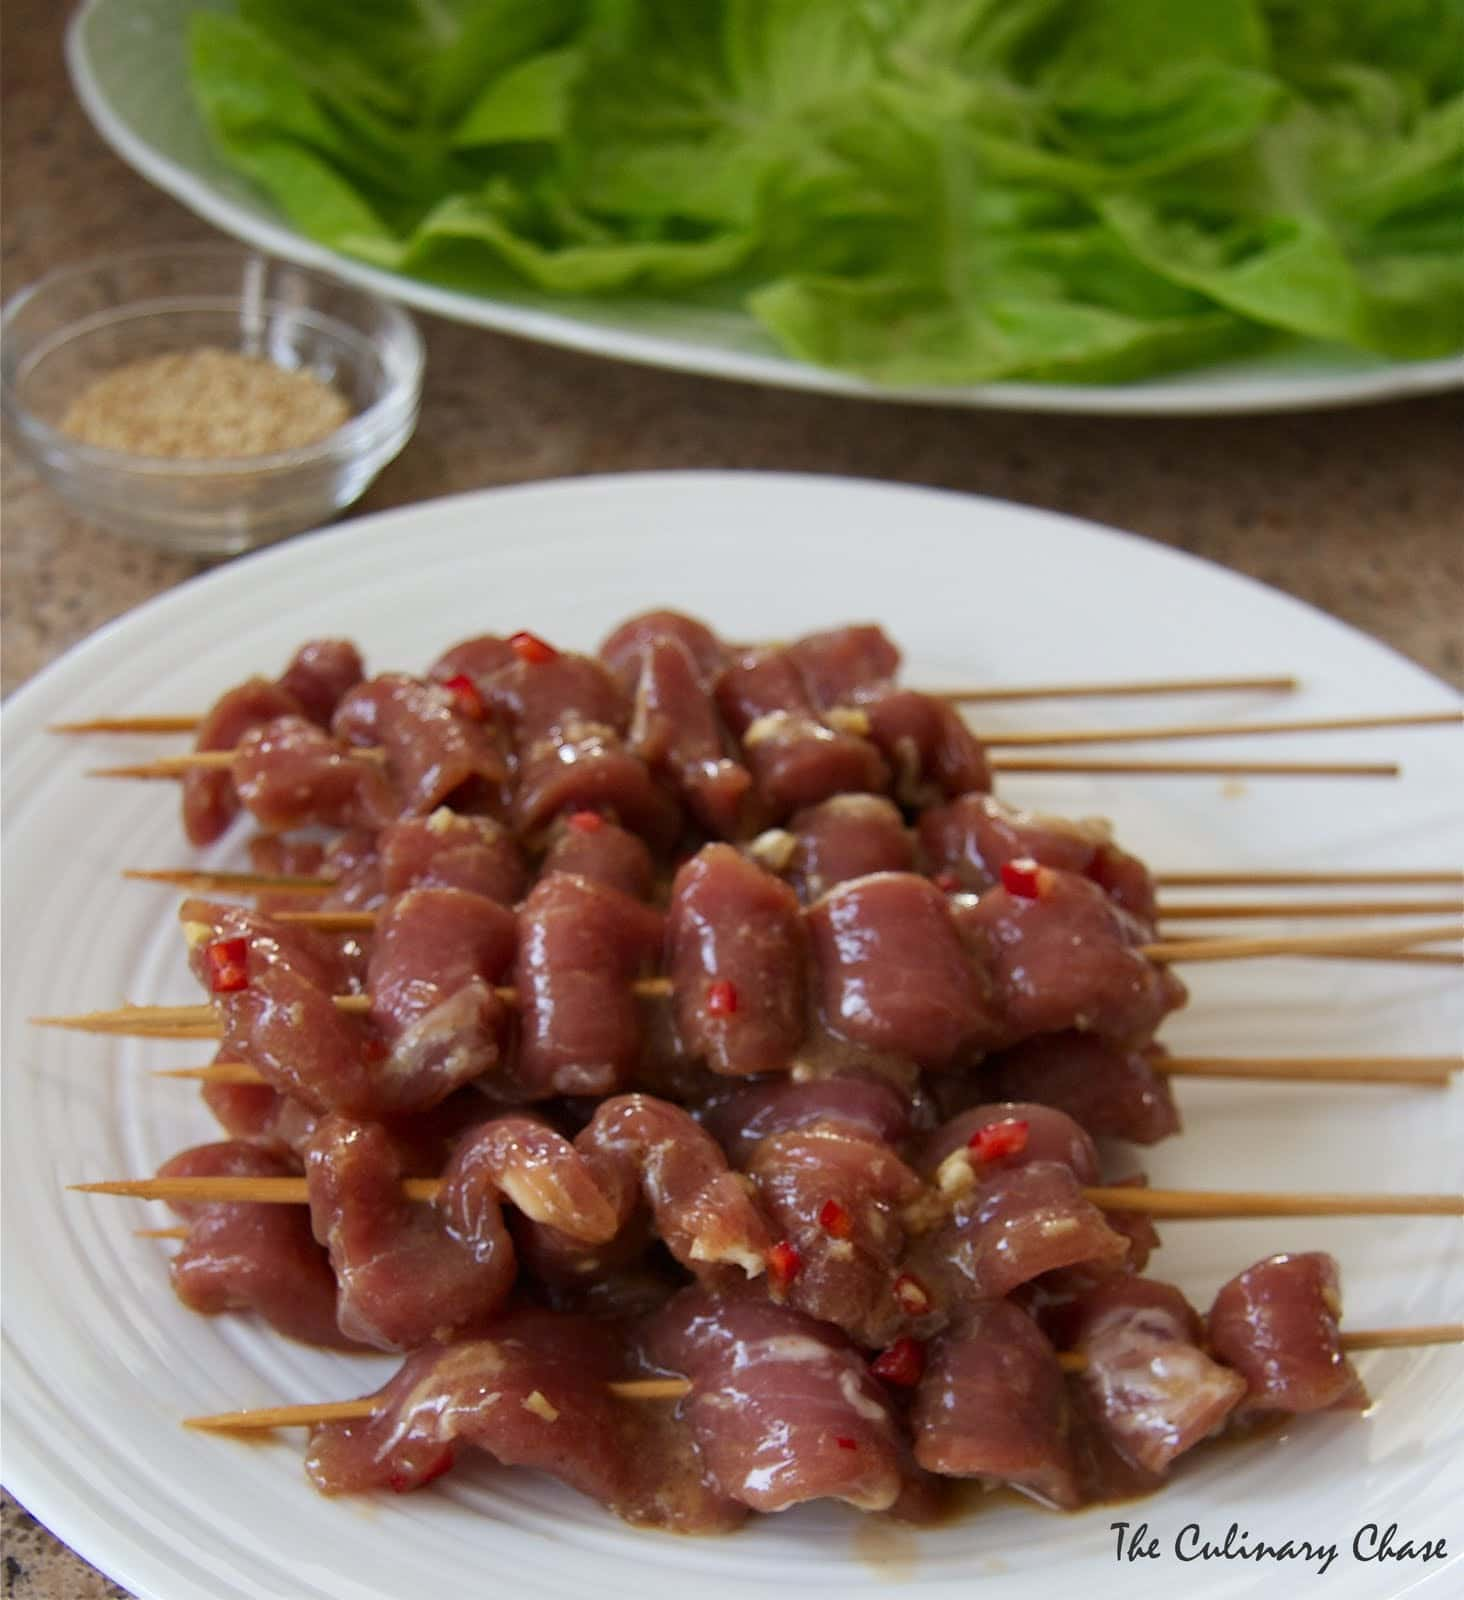 Gordon Ramsay's Vietnamese BBQ Pork Skewers - The Culinary Chase